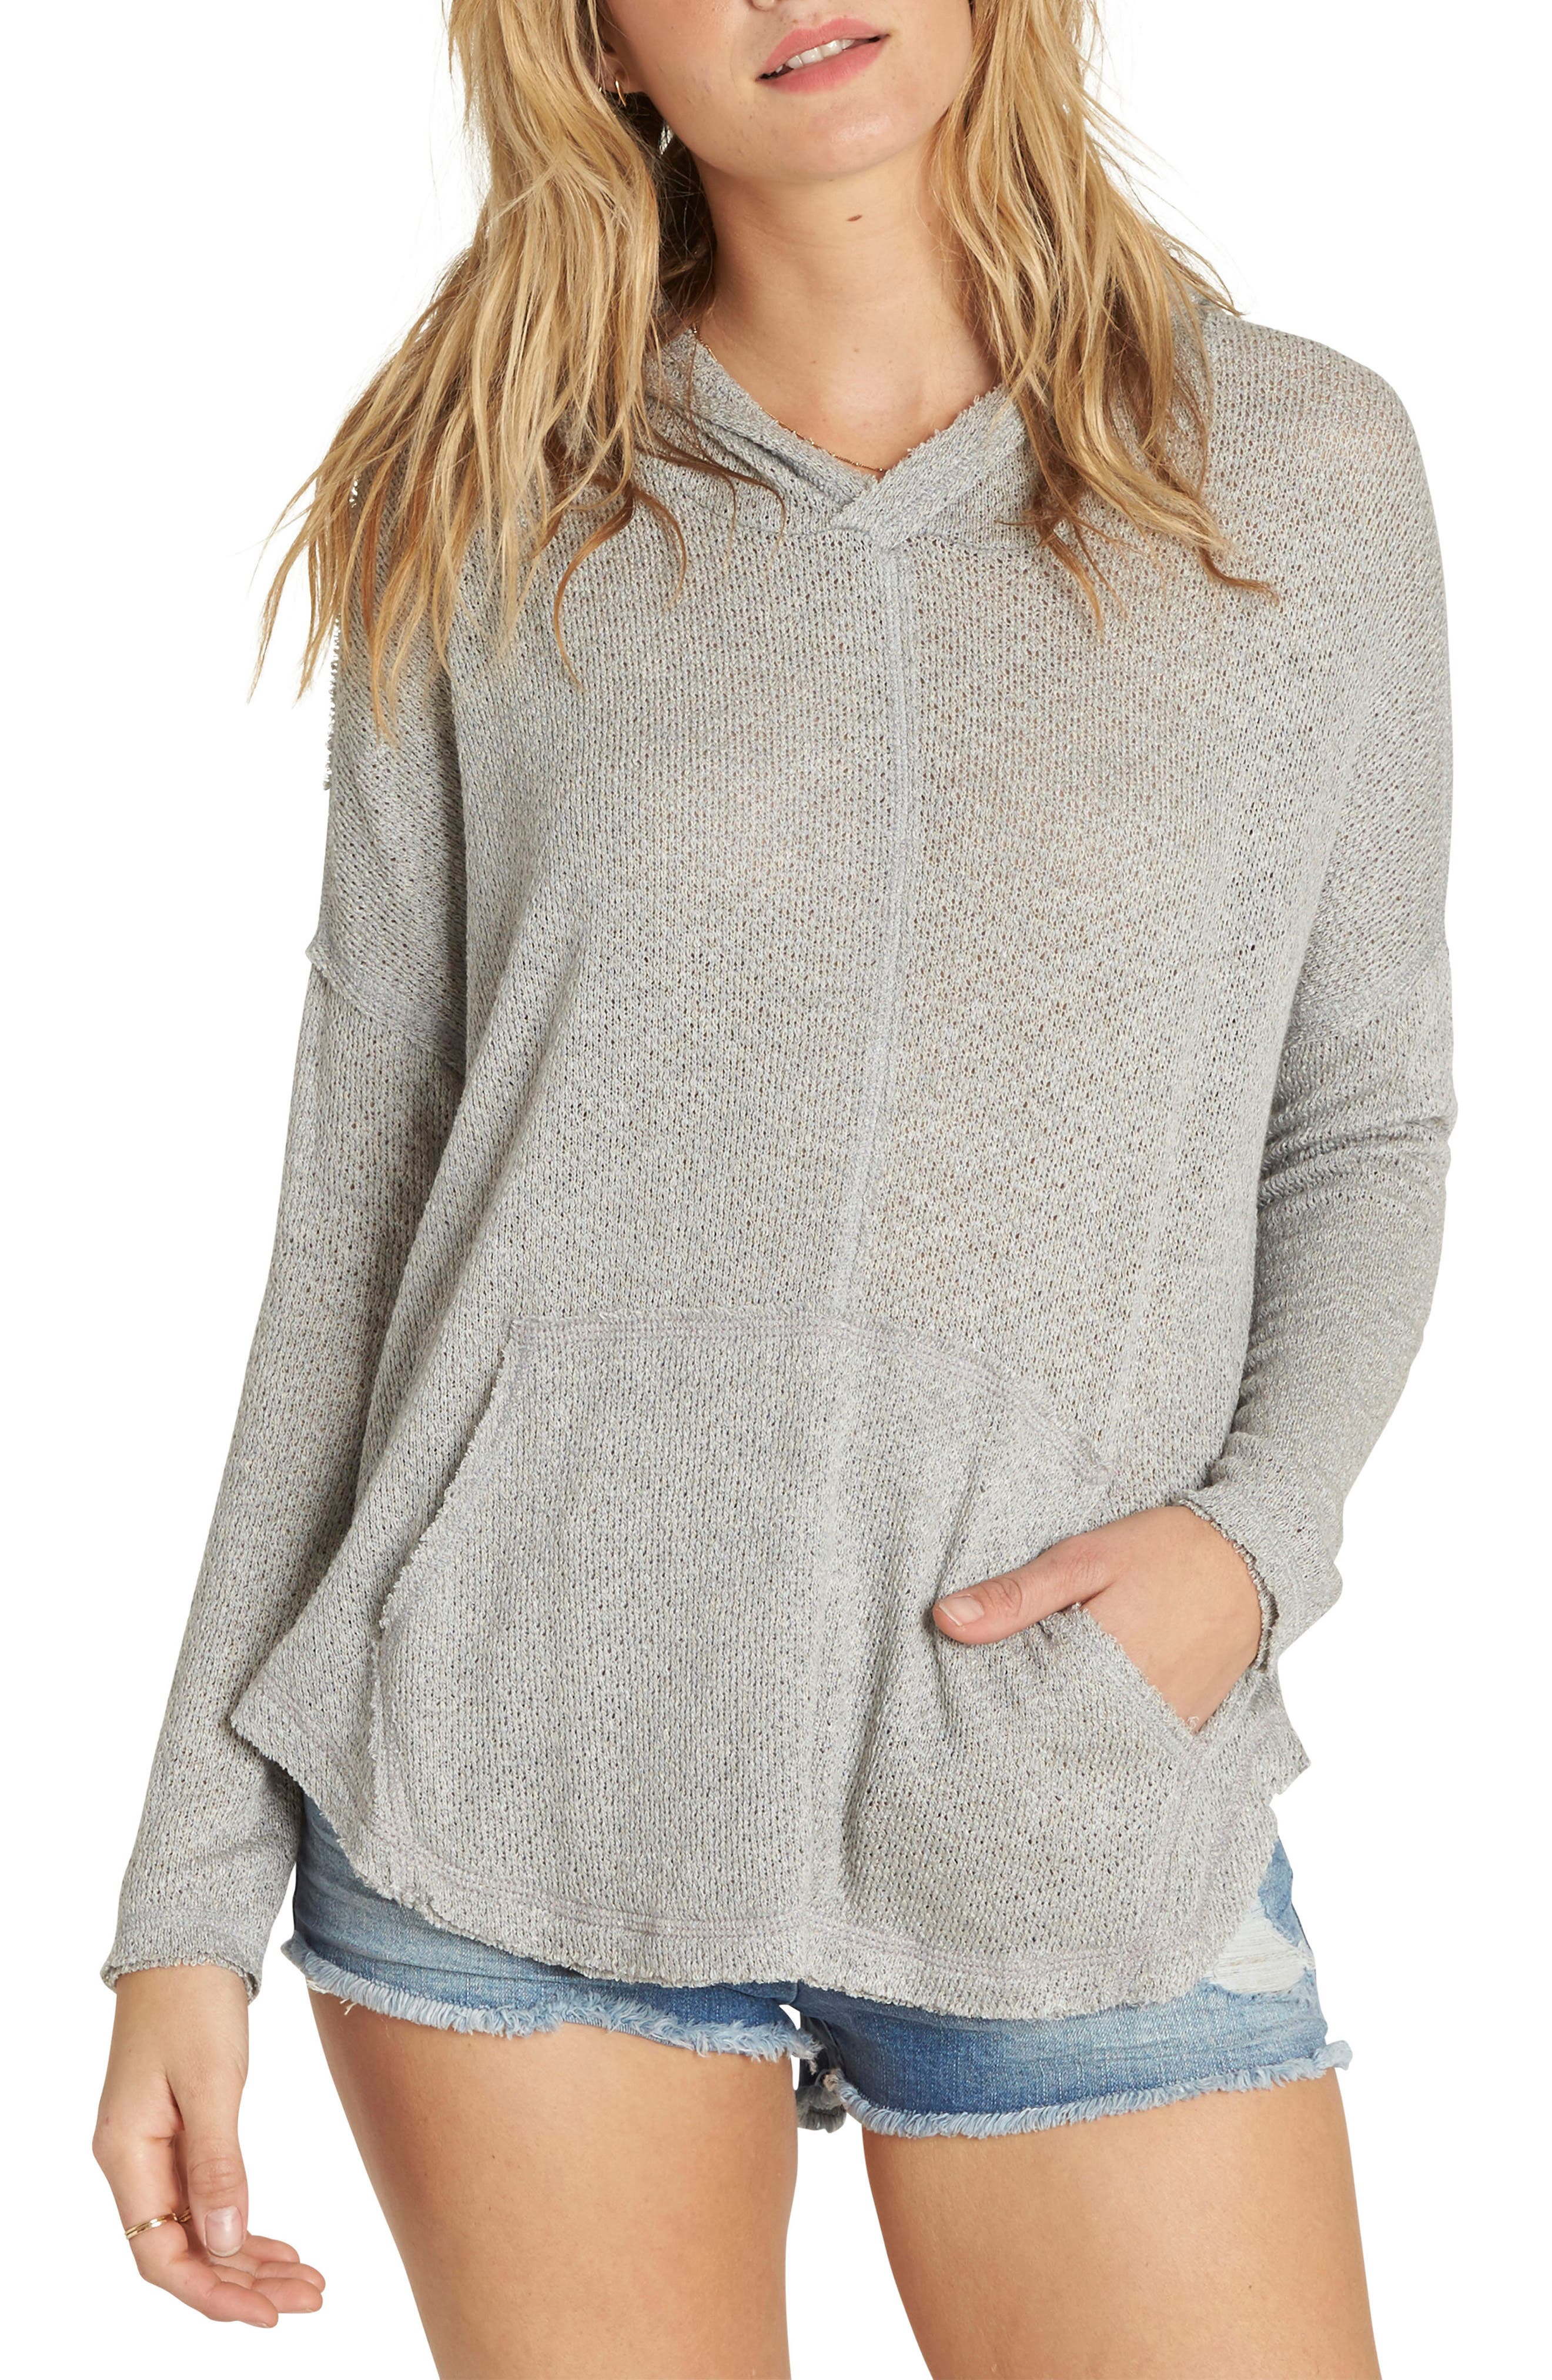 These Days Hooded Top,                         Main,                         color, 052